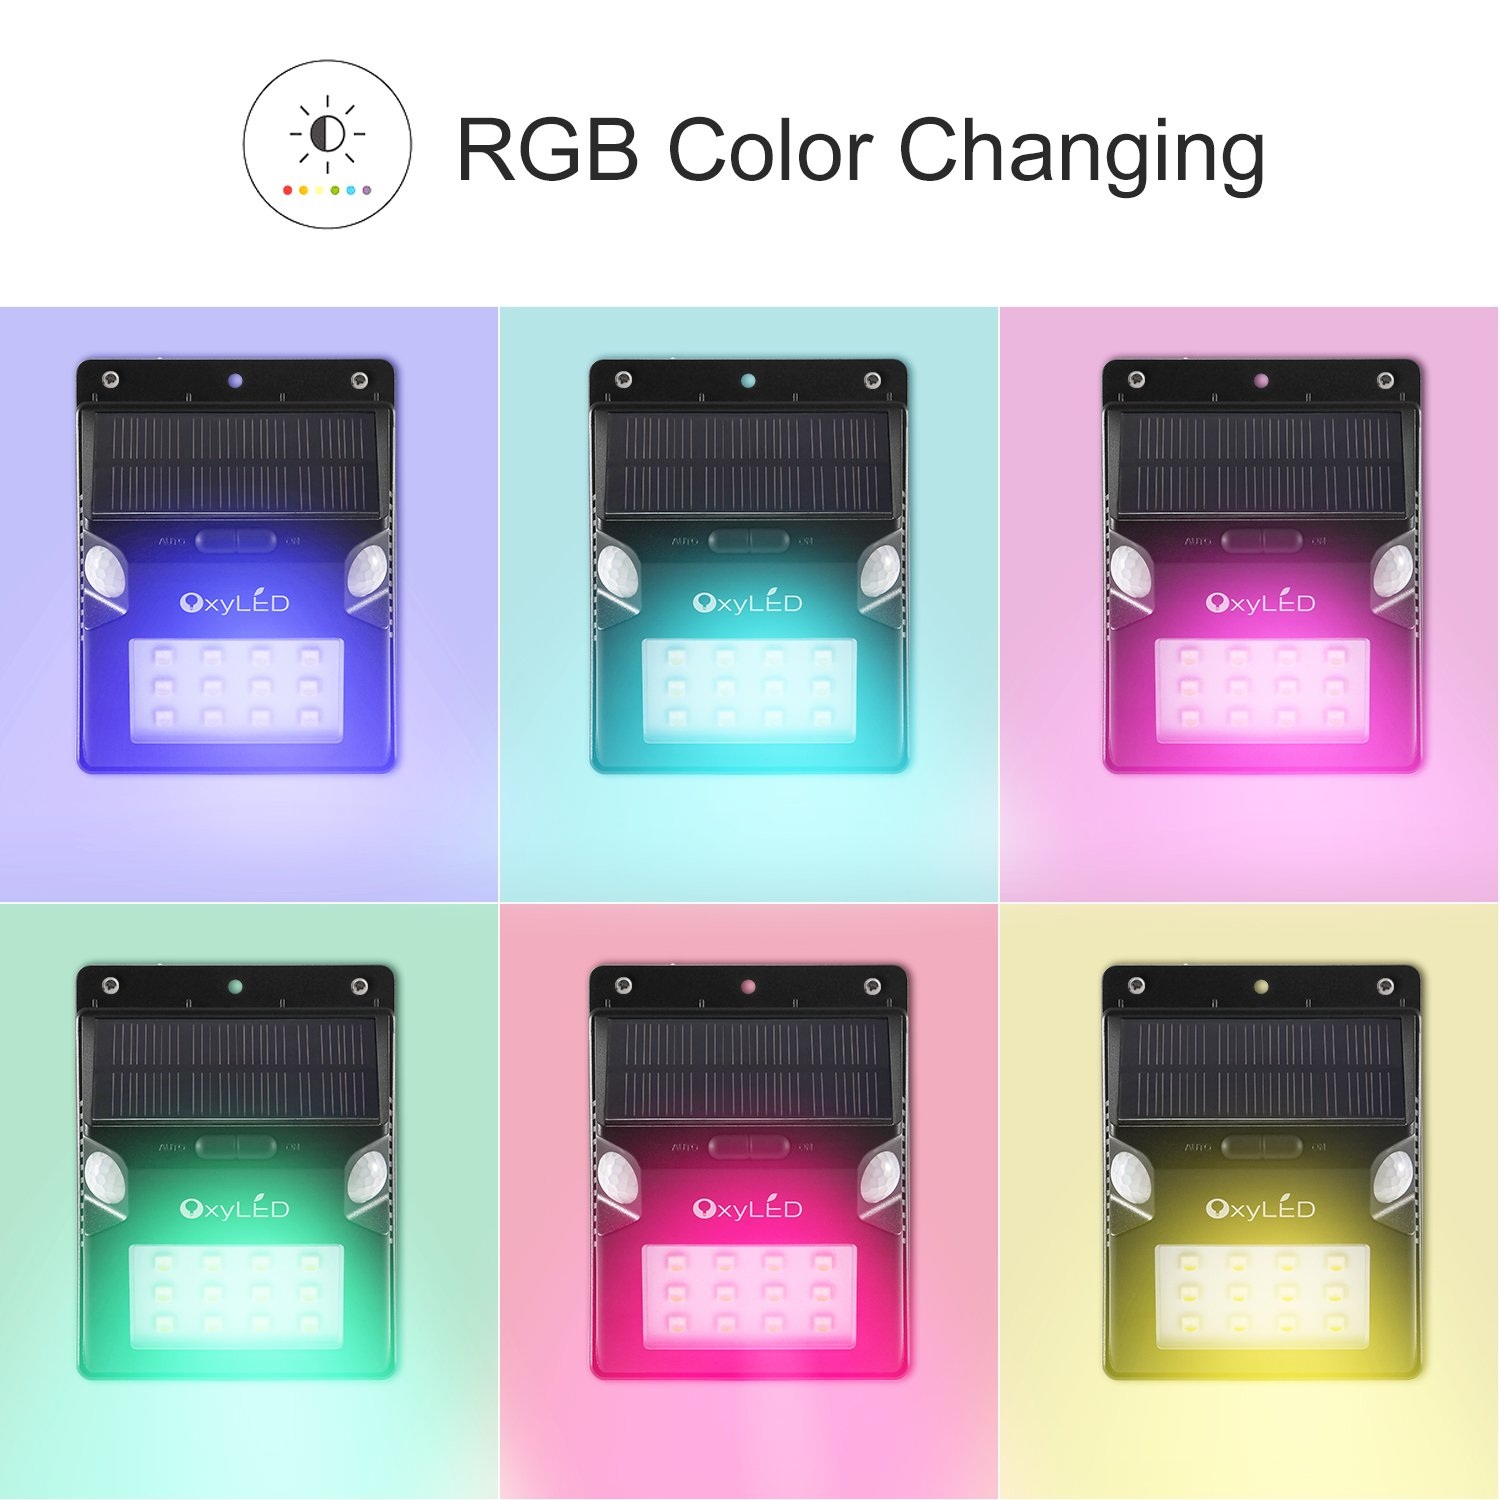 Solar Lights, OxyLED Wireless 12 LED Solar Motion Sensor Step Lights, Outdoor Wall Lights, Security Color-Changing Lights, Waterproof Landscape Light for Outdoor, Garden Decor, Patio, 2 Pack by OxyLED (Image #5)